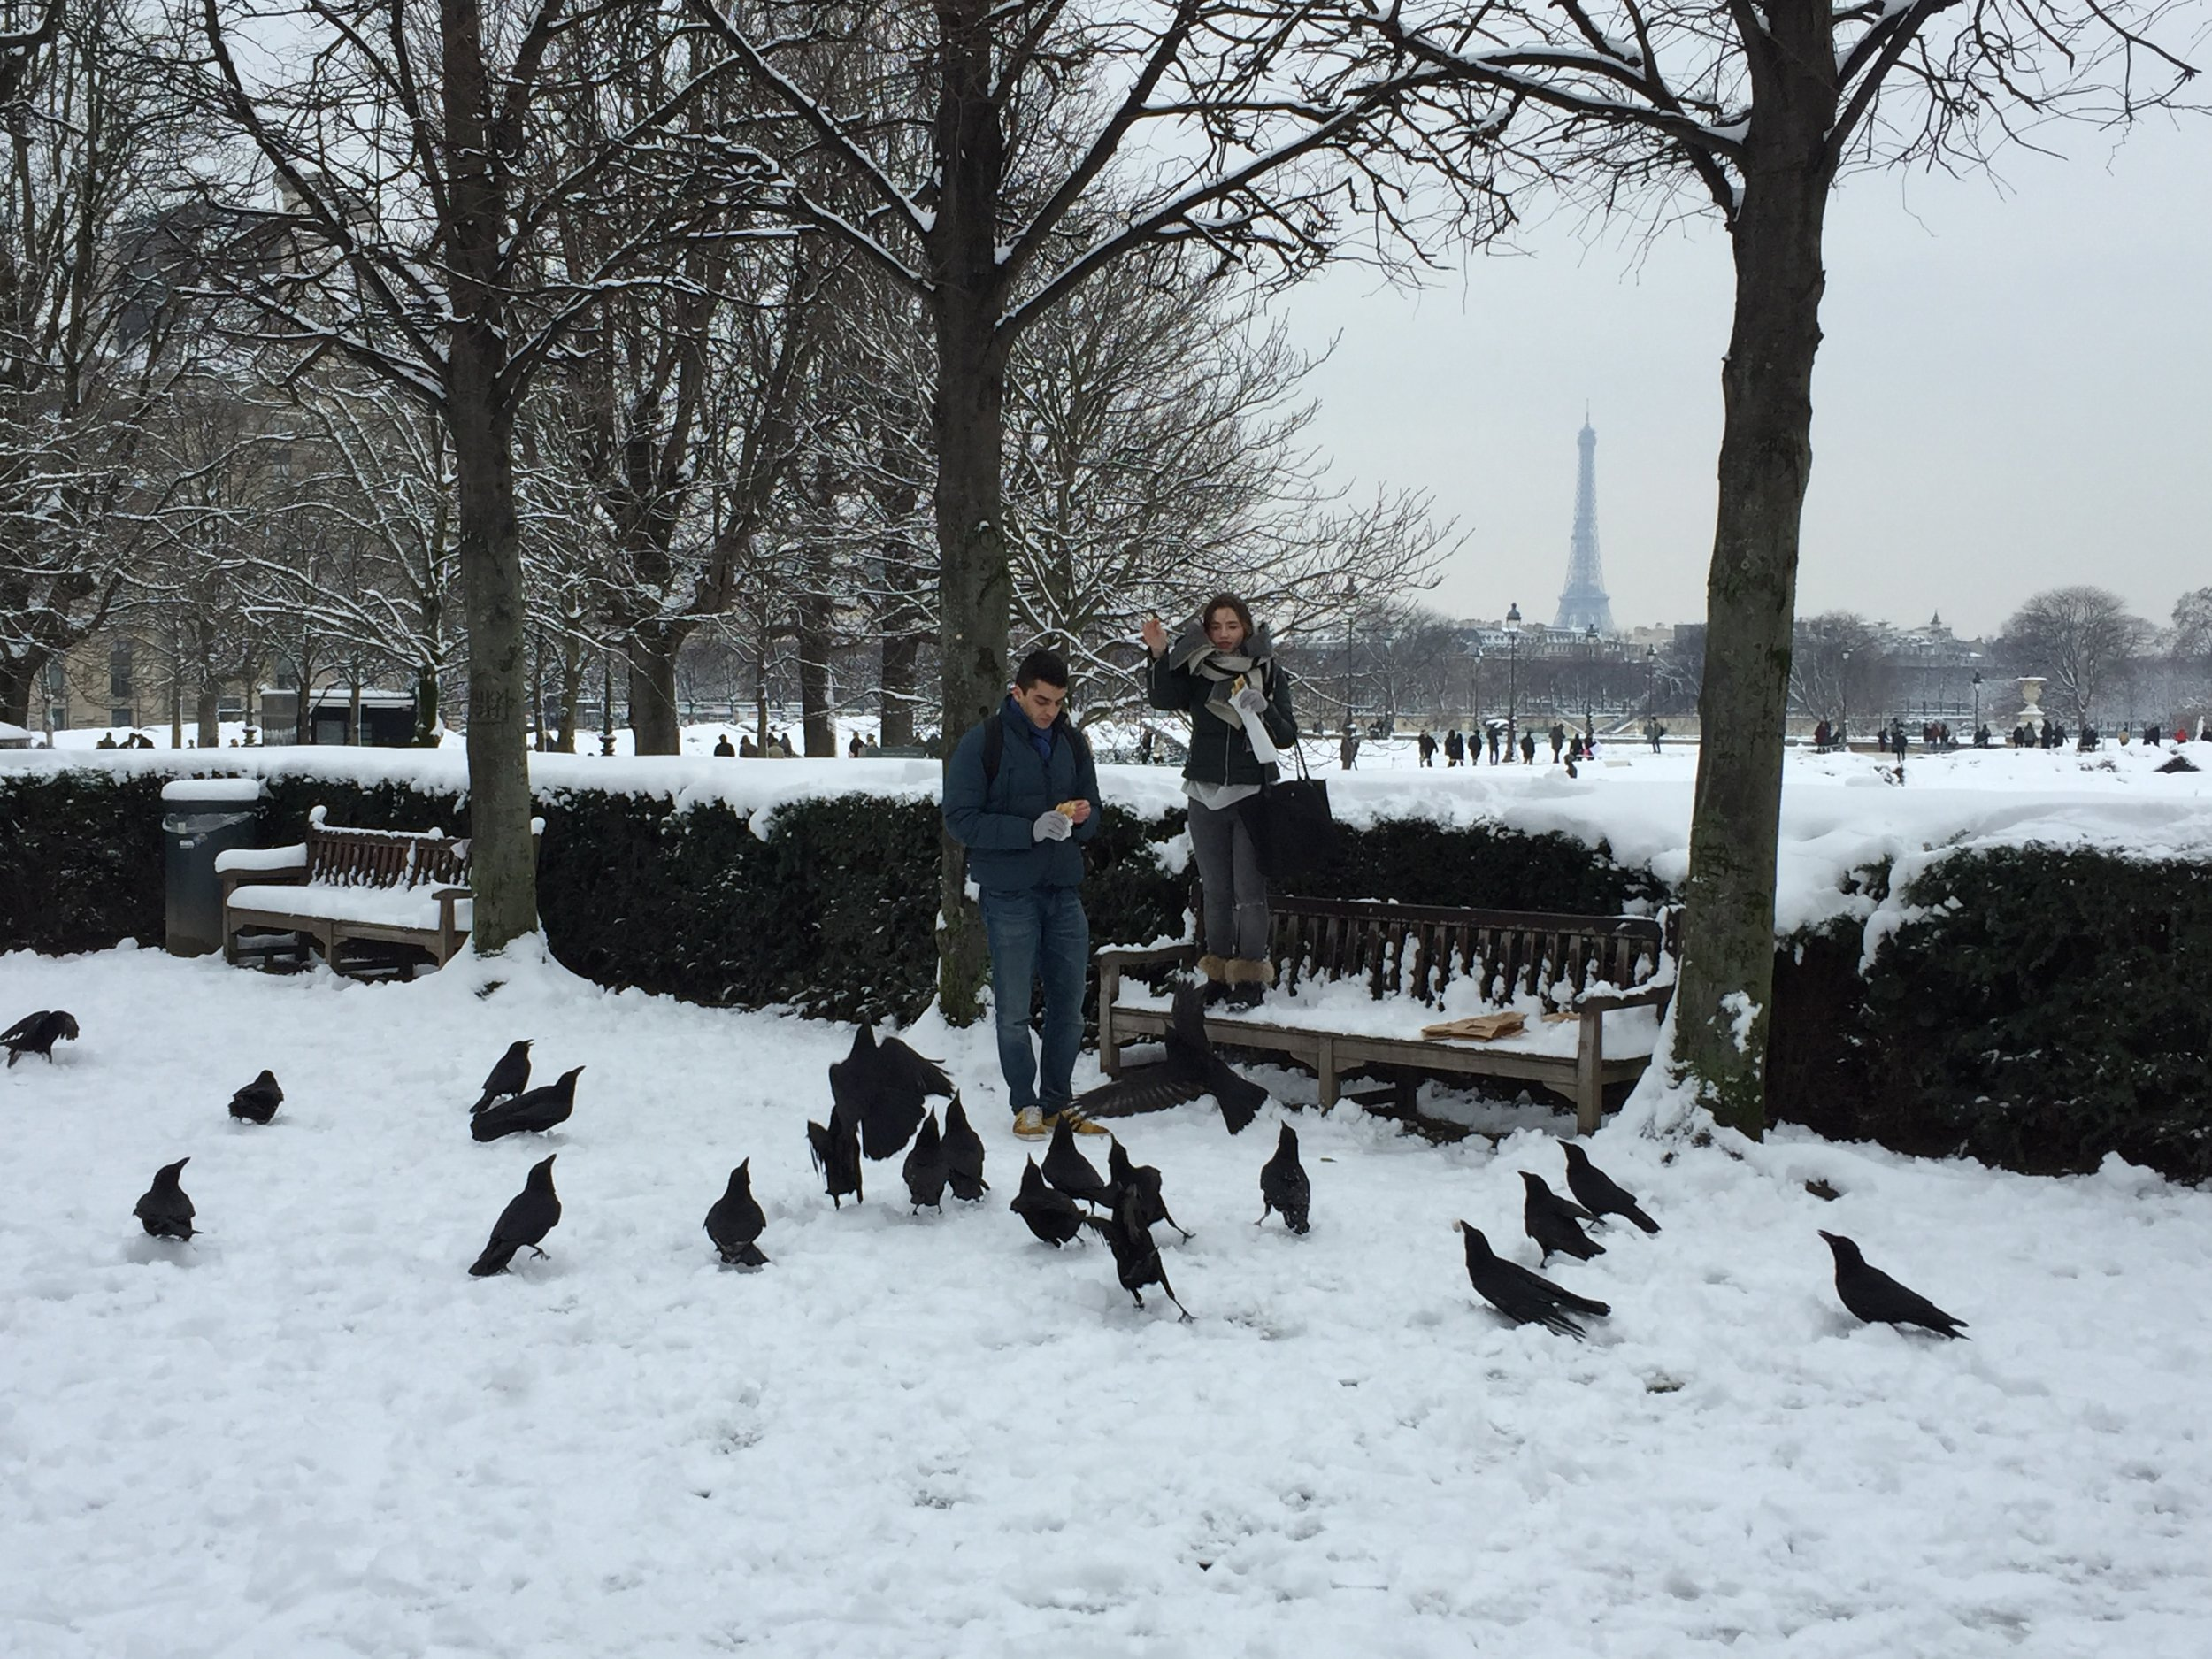 In the Tuileries gardens, these birds might be cold but not hungry!